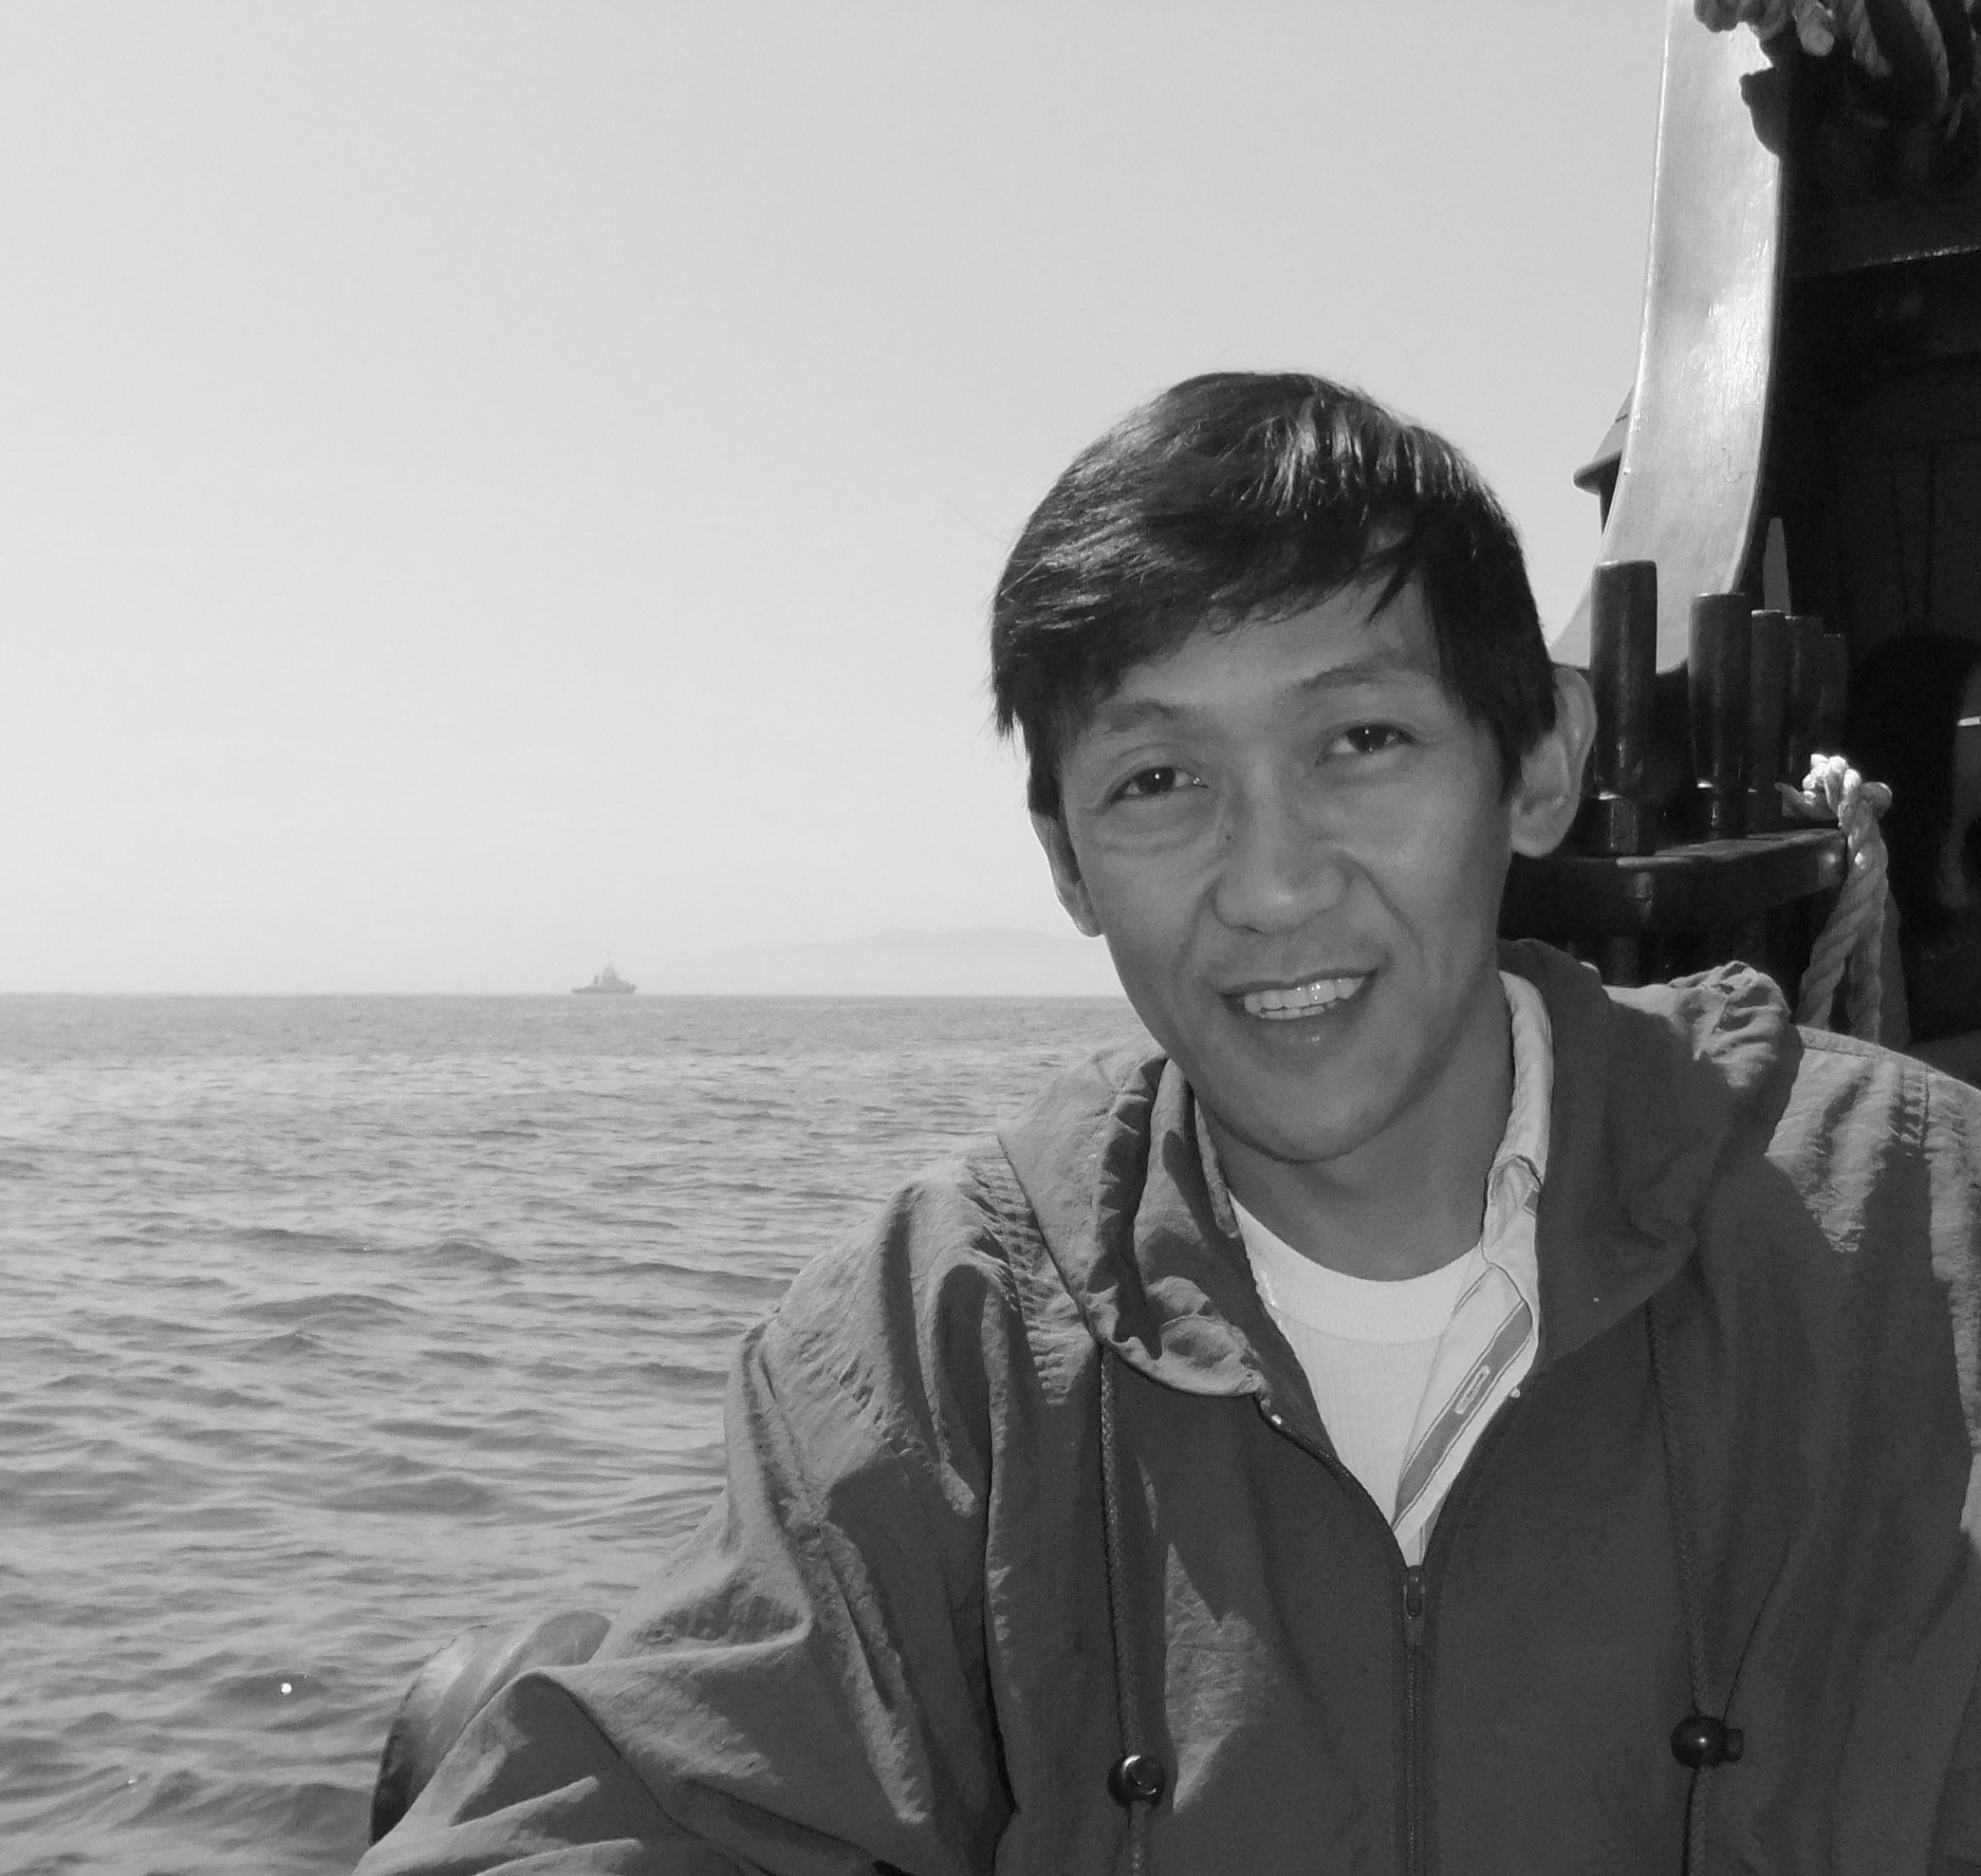 Picture of Interview with Jim Pascual Agustin by the sea